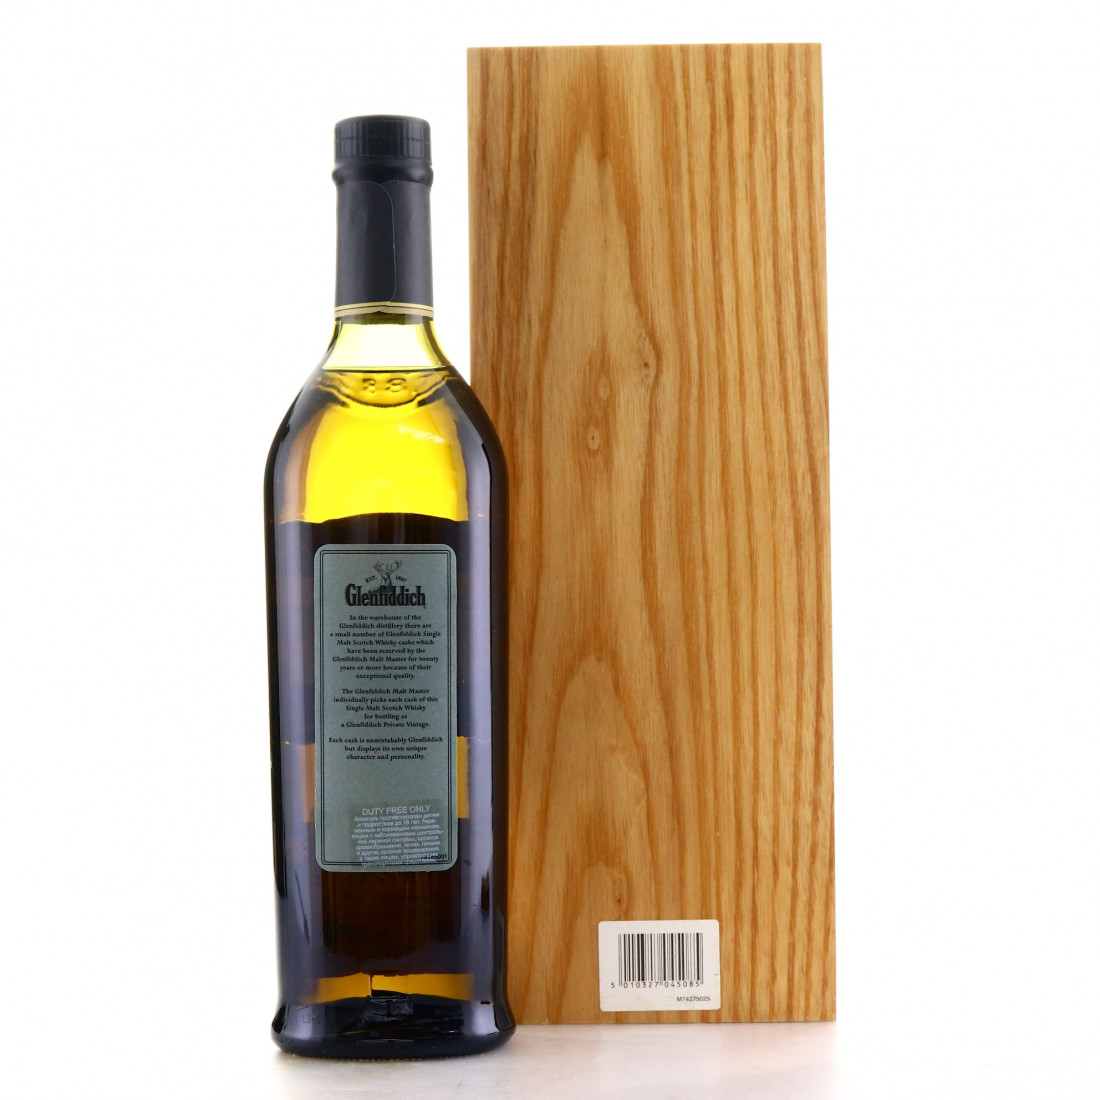 Glenfiddich 1955 Private Vintage #4221